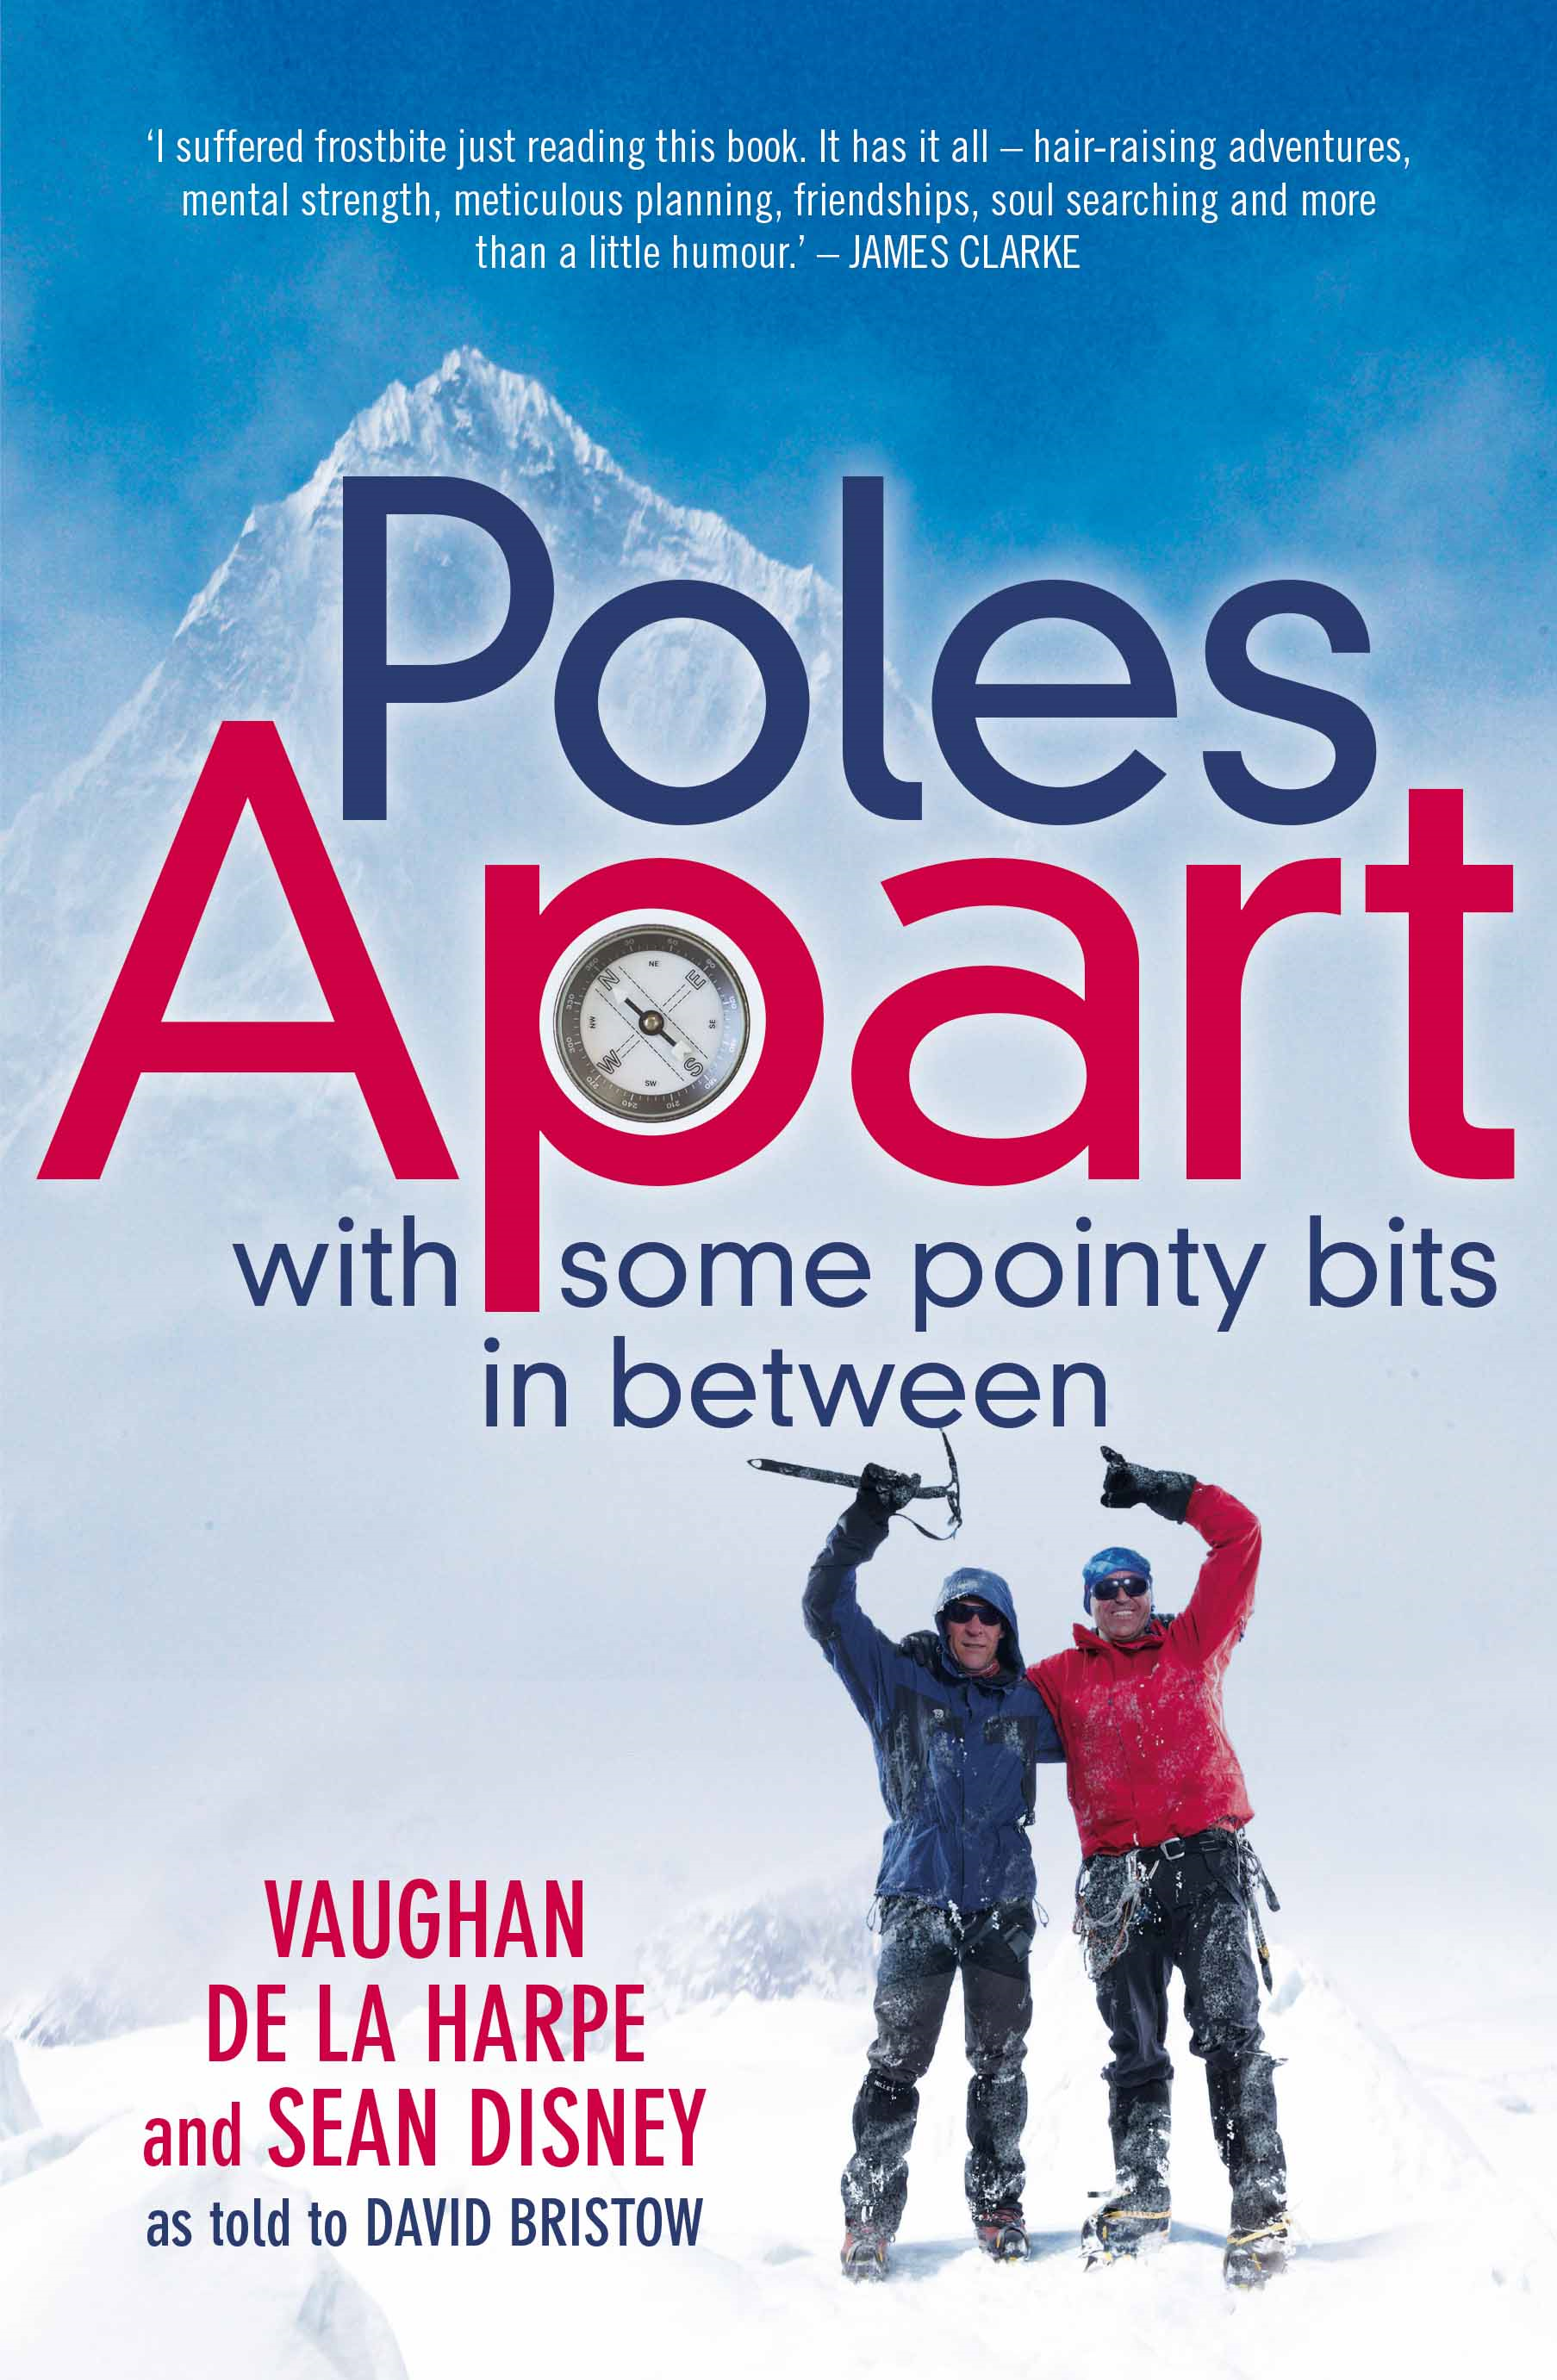 Poles Apart with some pointy bits in between